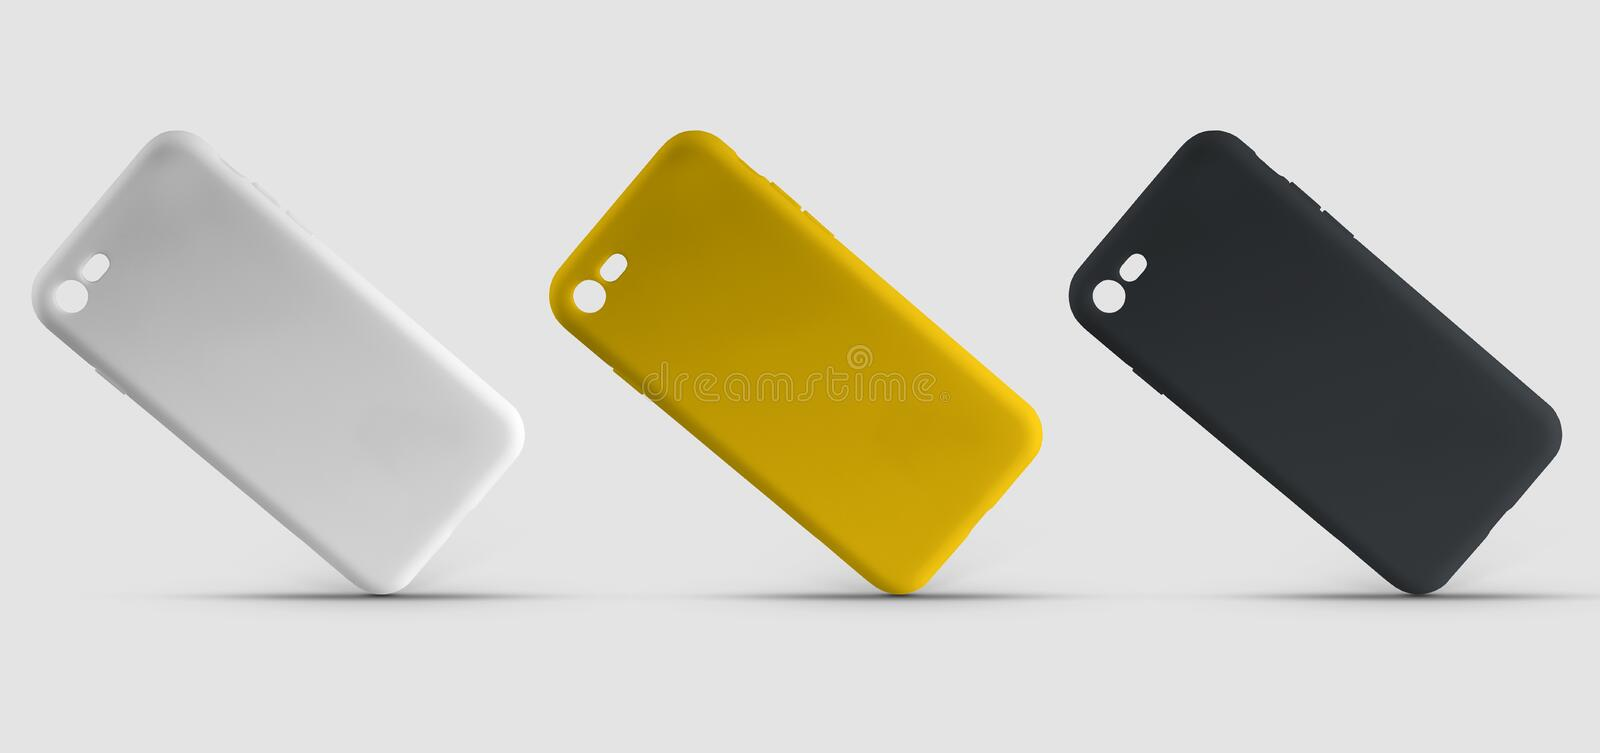 Set of 3 multi-colored smartphone cases, yellow, black and white, template on isolated background for design presentation. Mockup covers on mobile for stock illustration